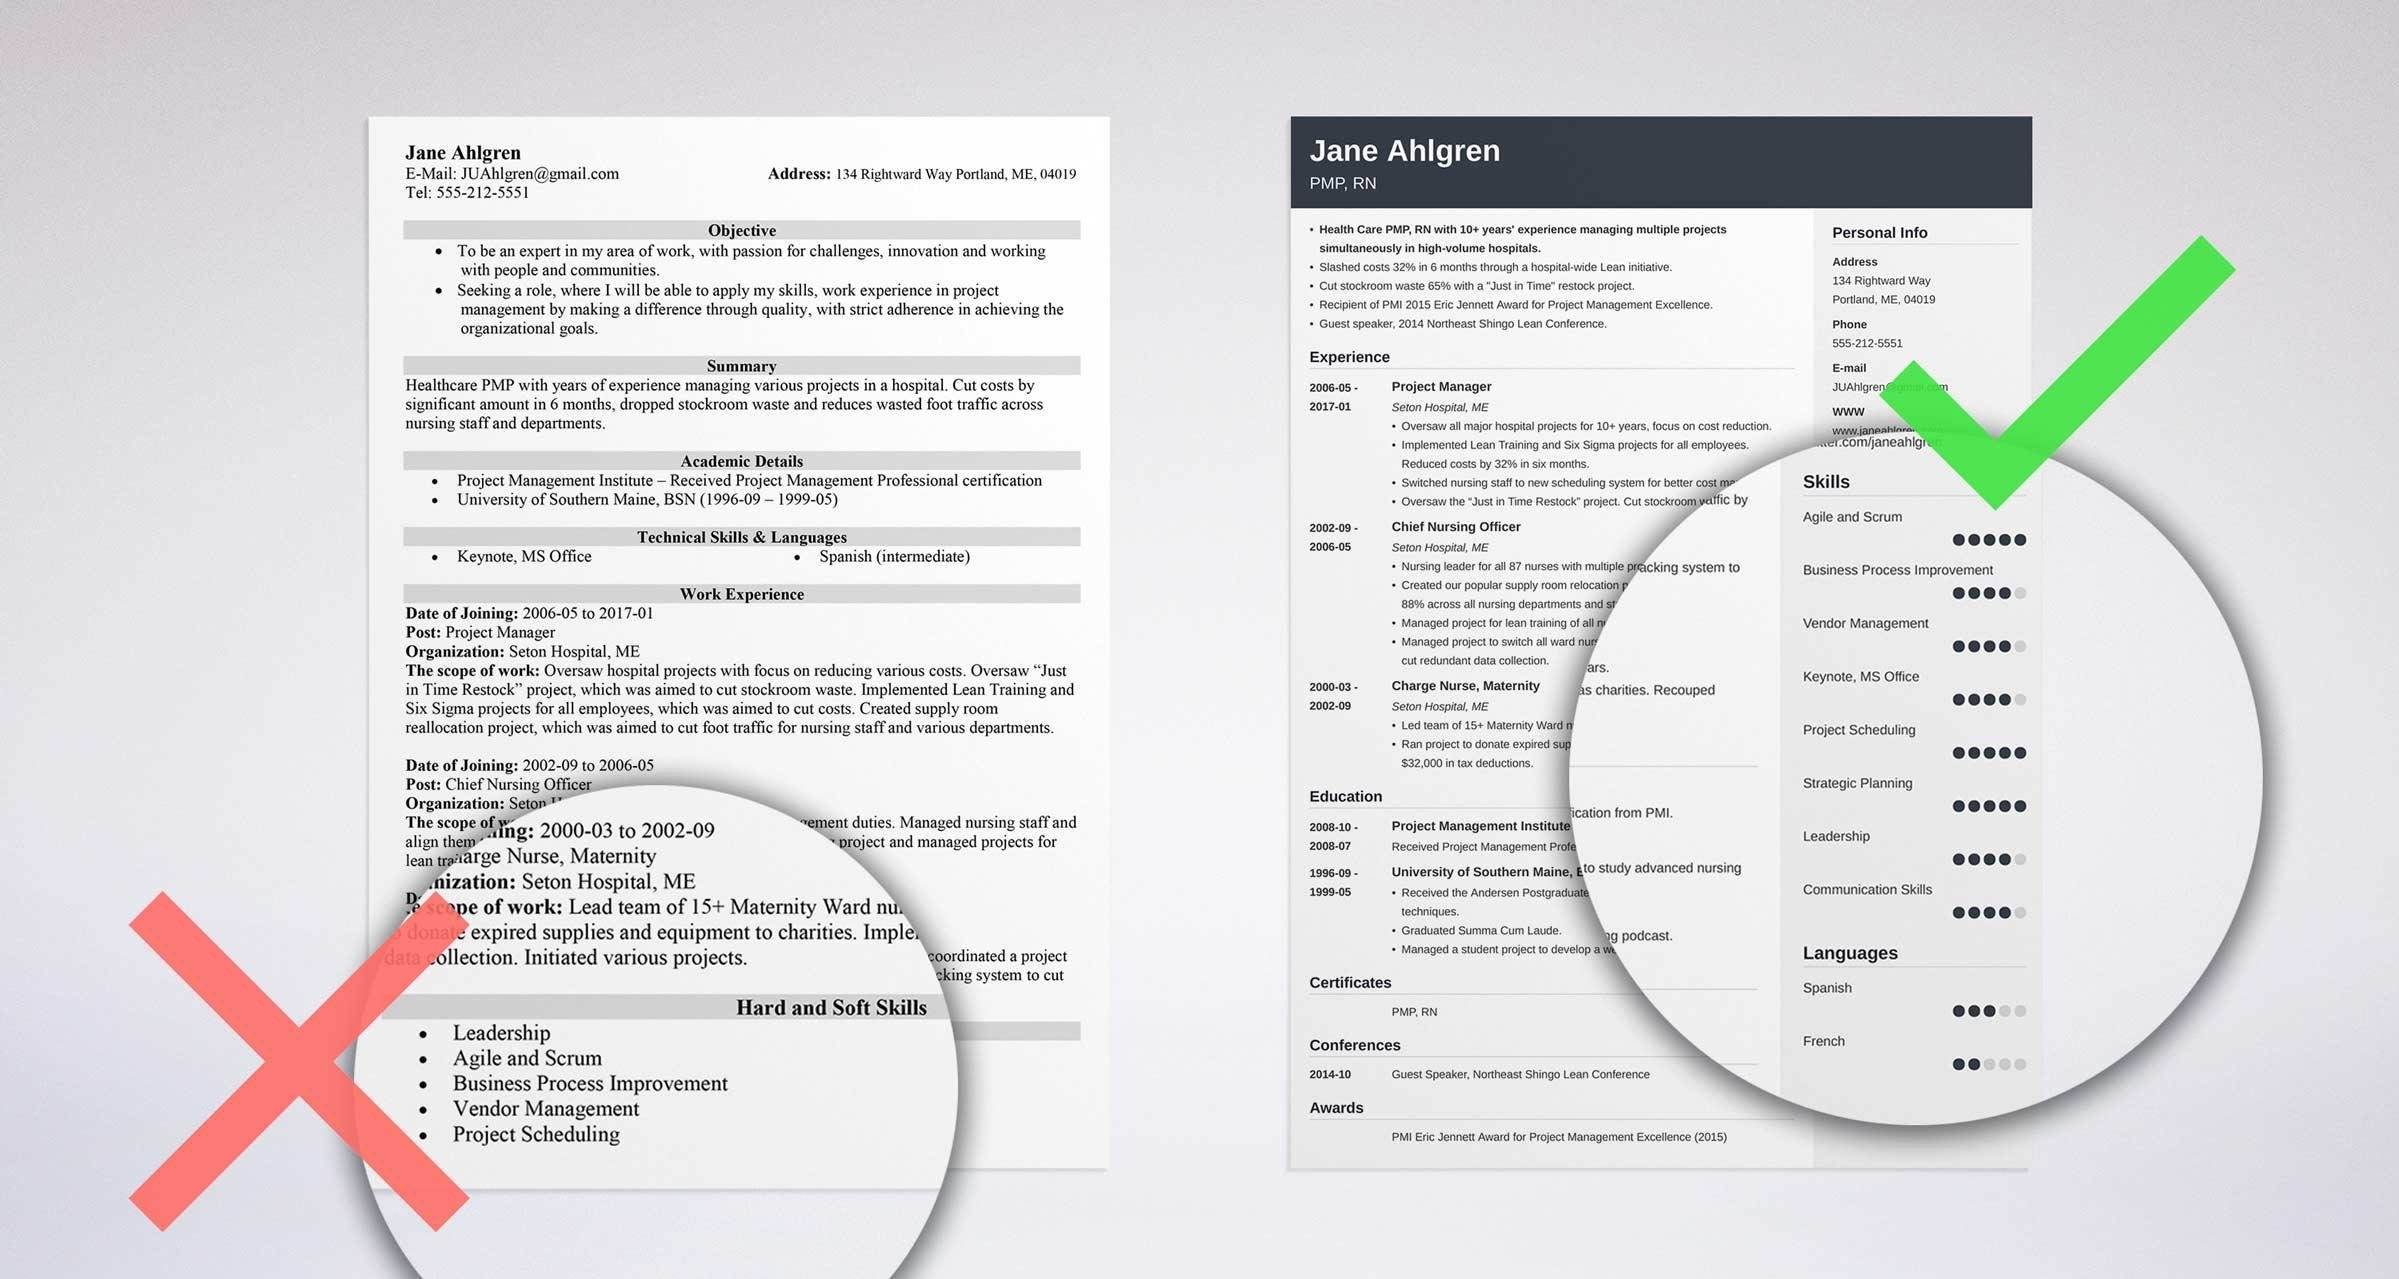 key points to mention in resume